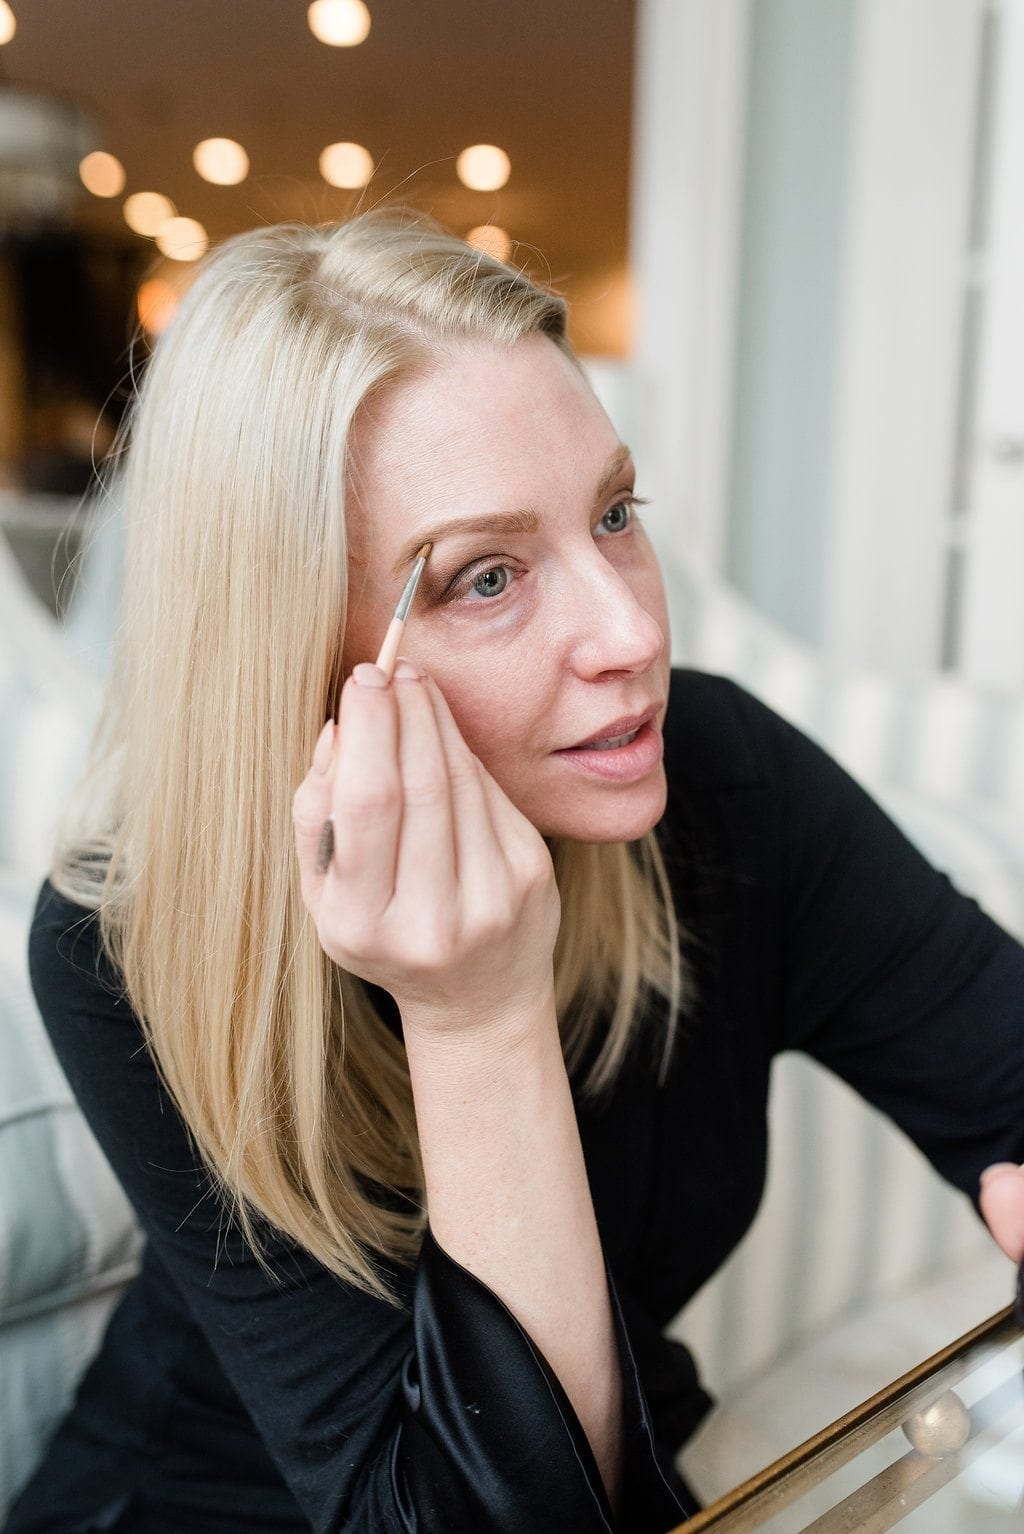 Eyebrow powder to quickly fill in light blonde eyebrows.